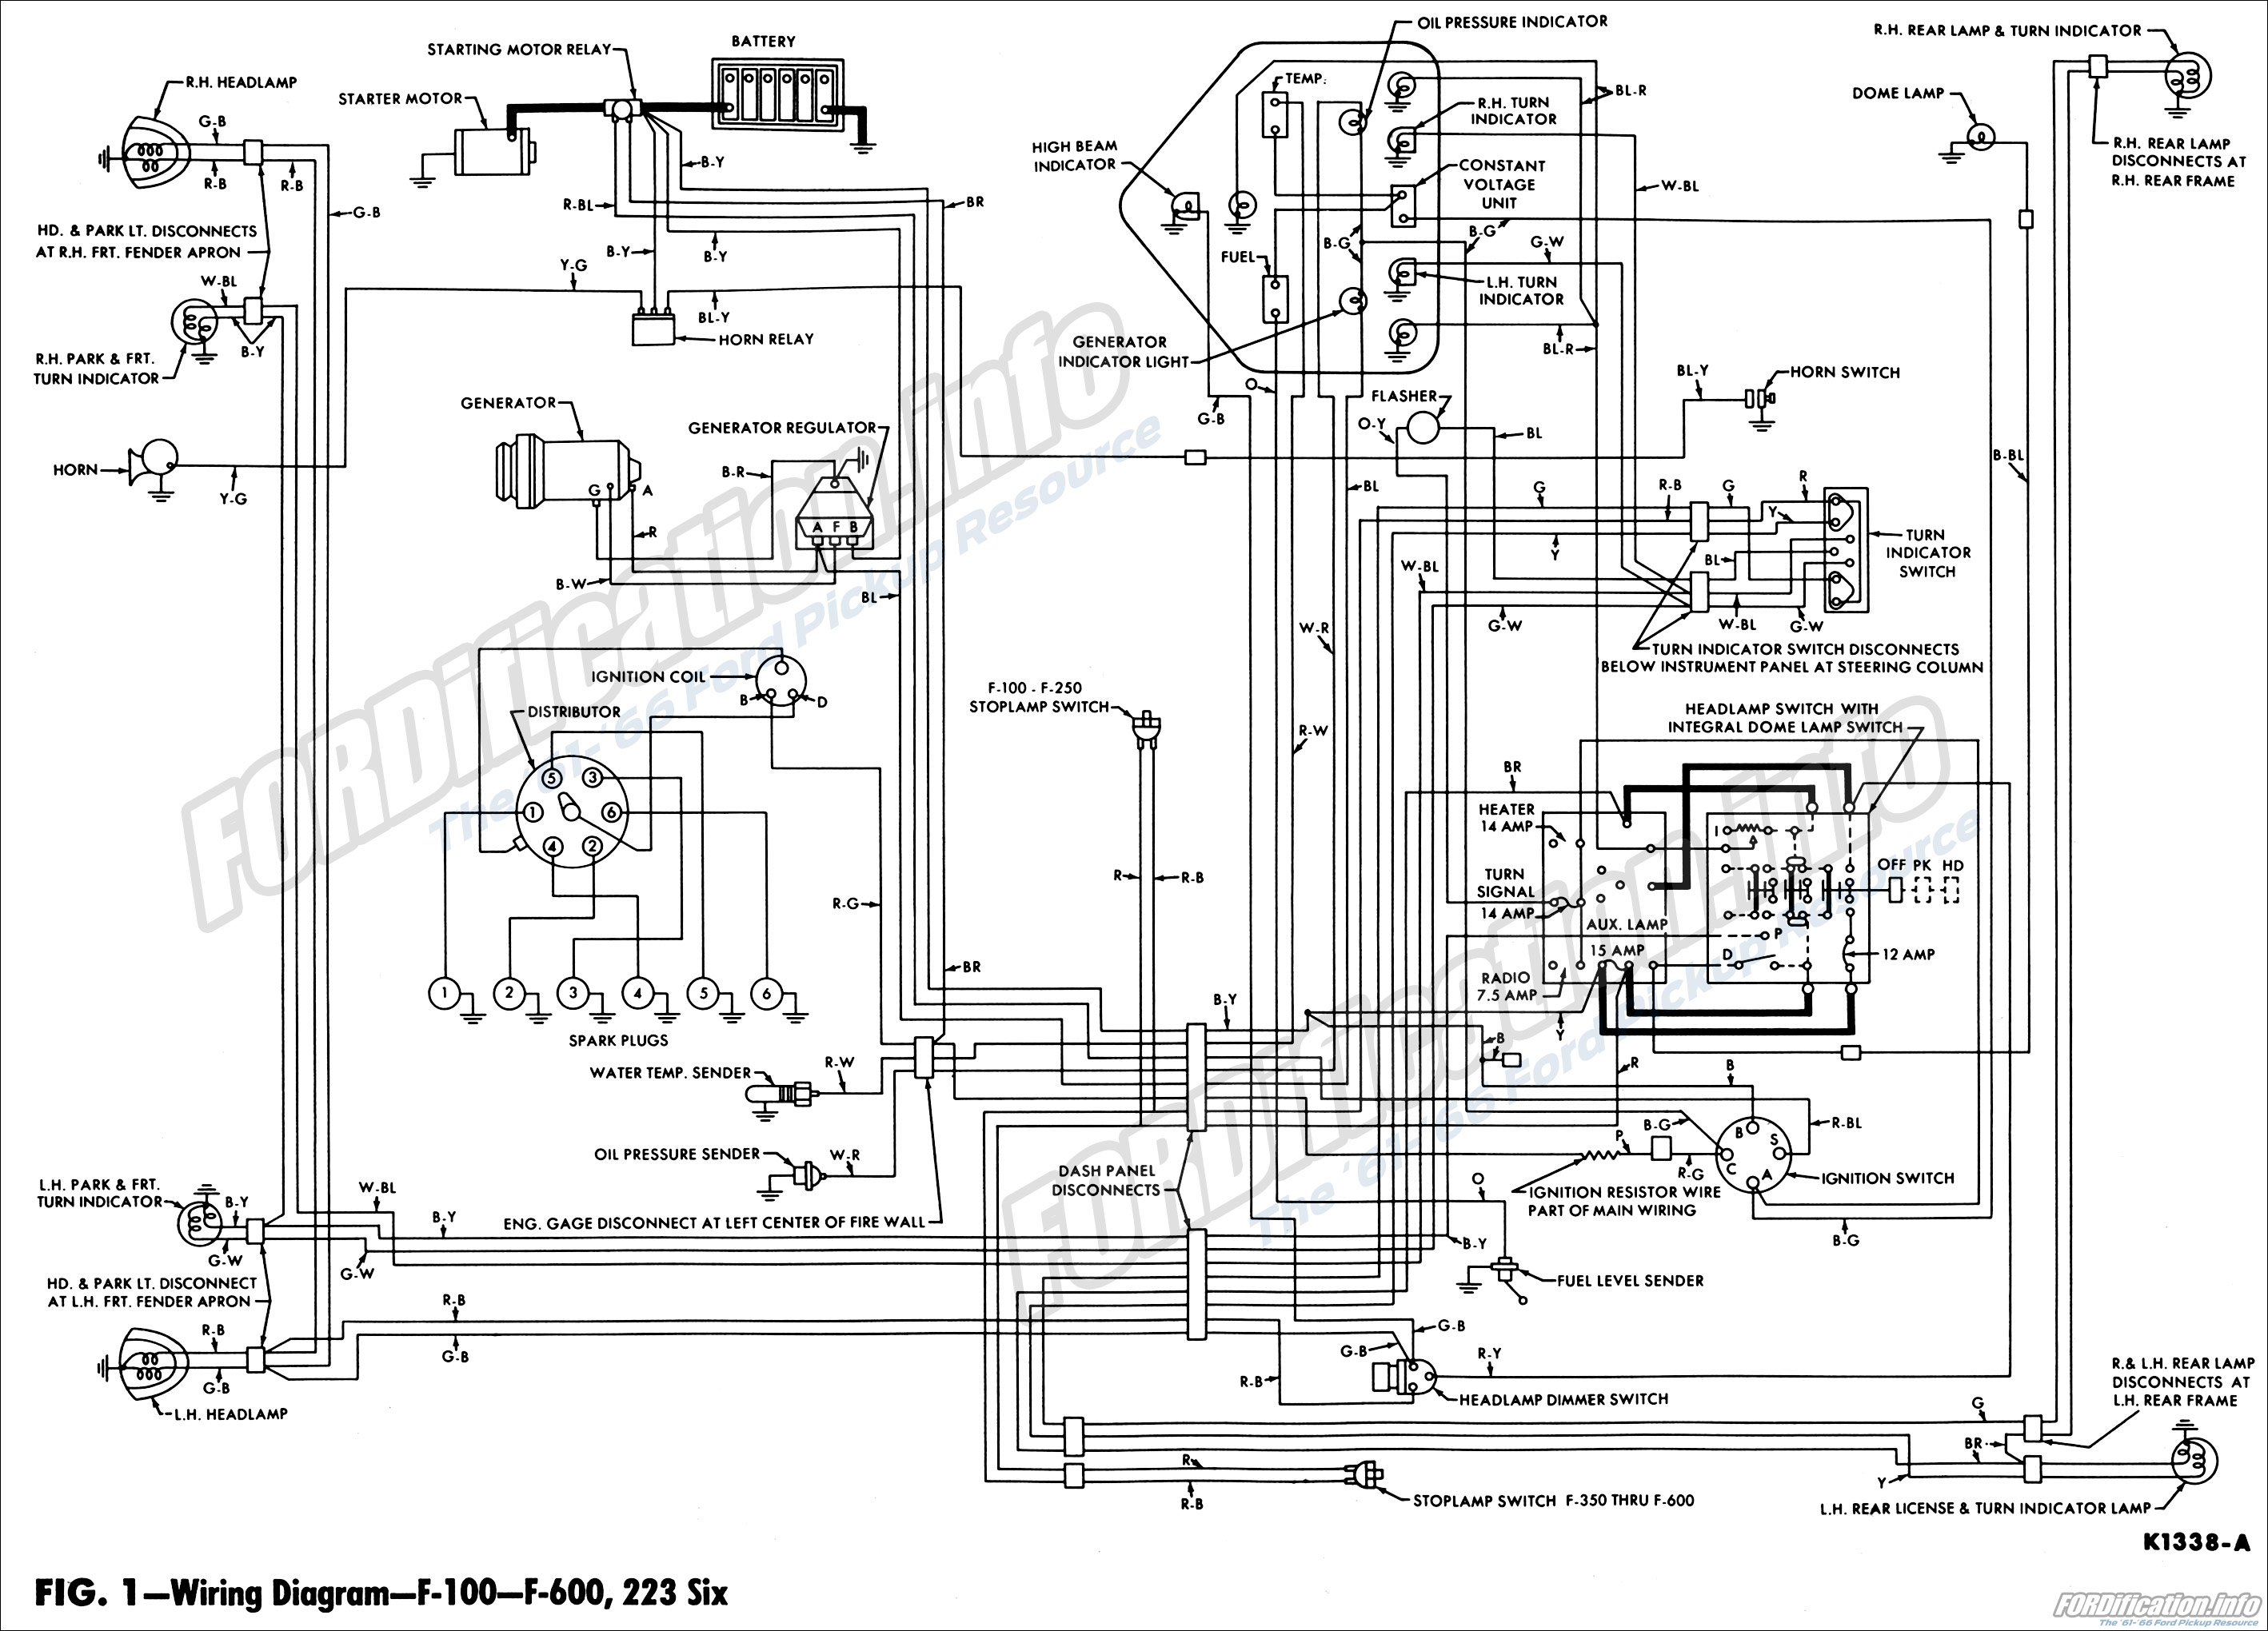 1962 f100 wiring diagram   24 wiring diagram images